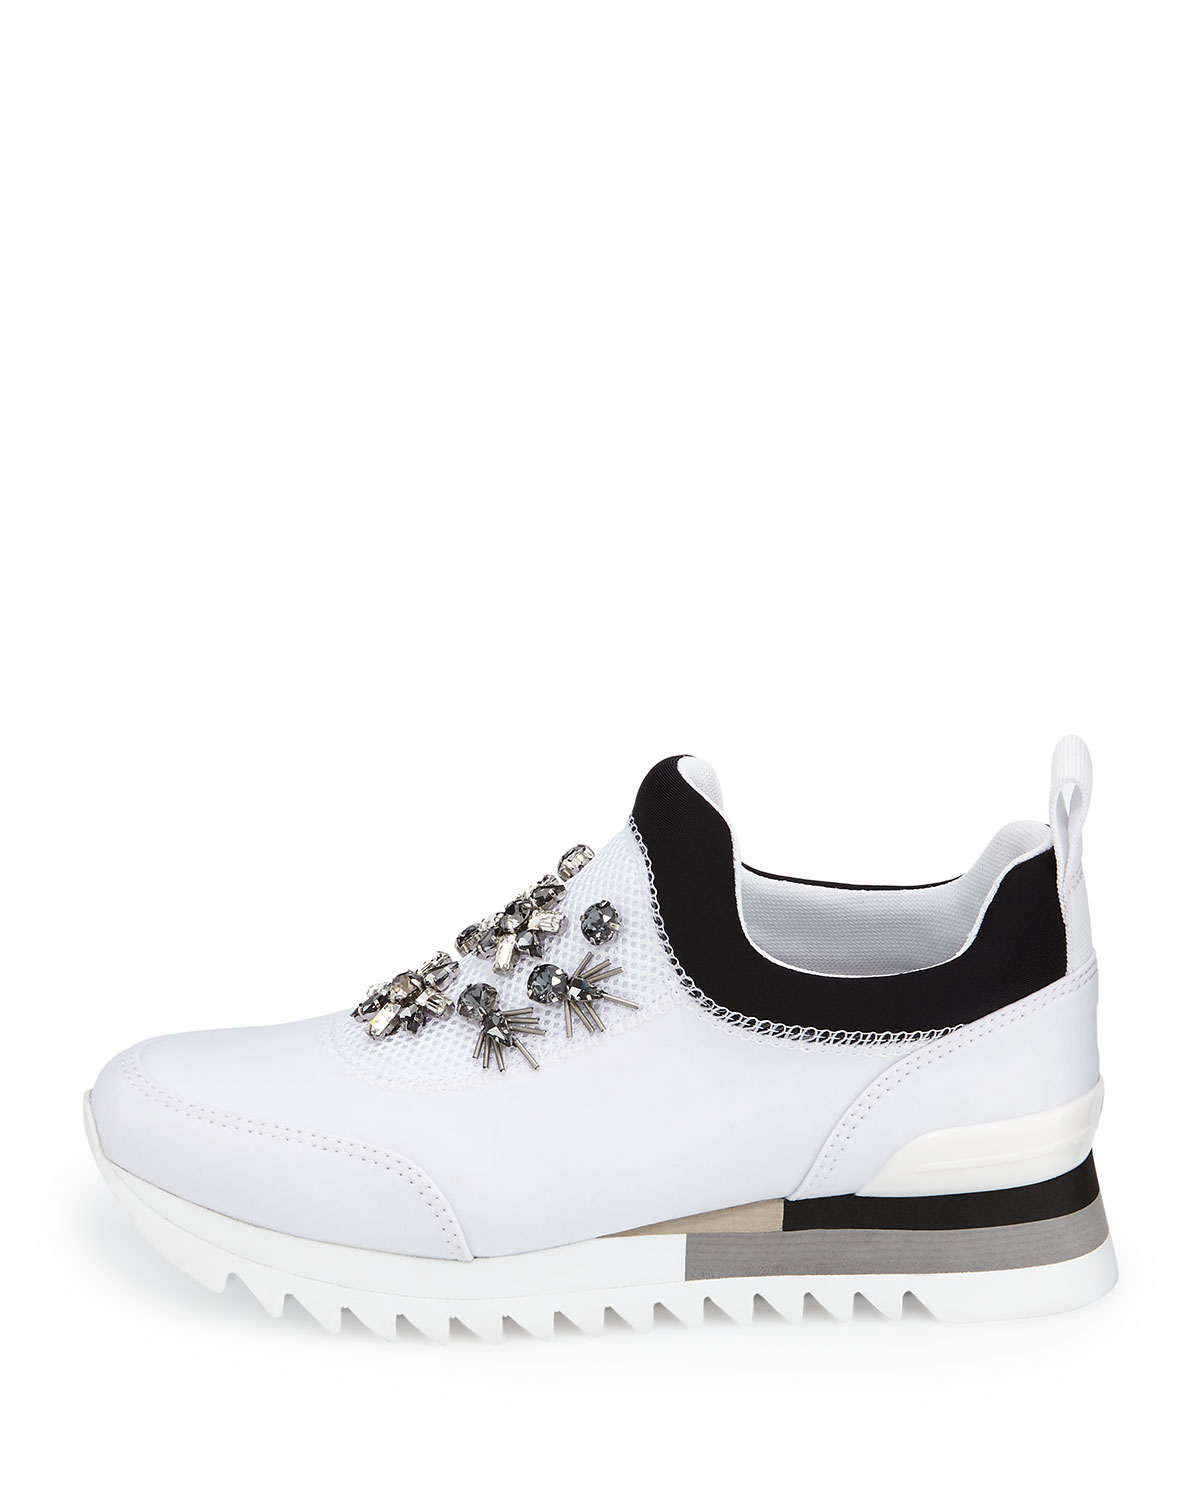 0782016f1 Lyst - Tory Burch Rosas Embellished Runner Sneaker in White